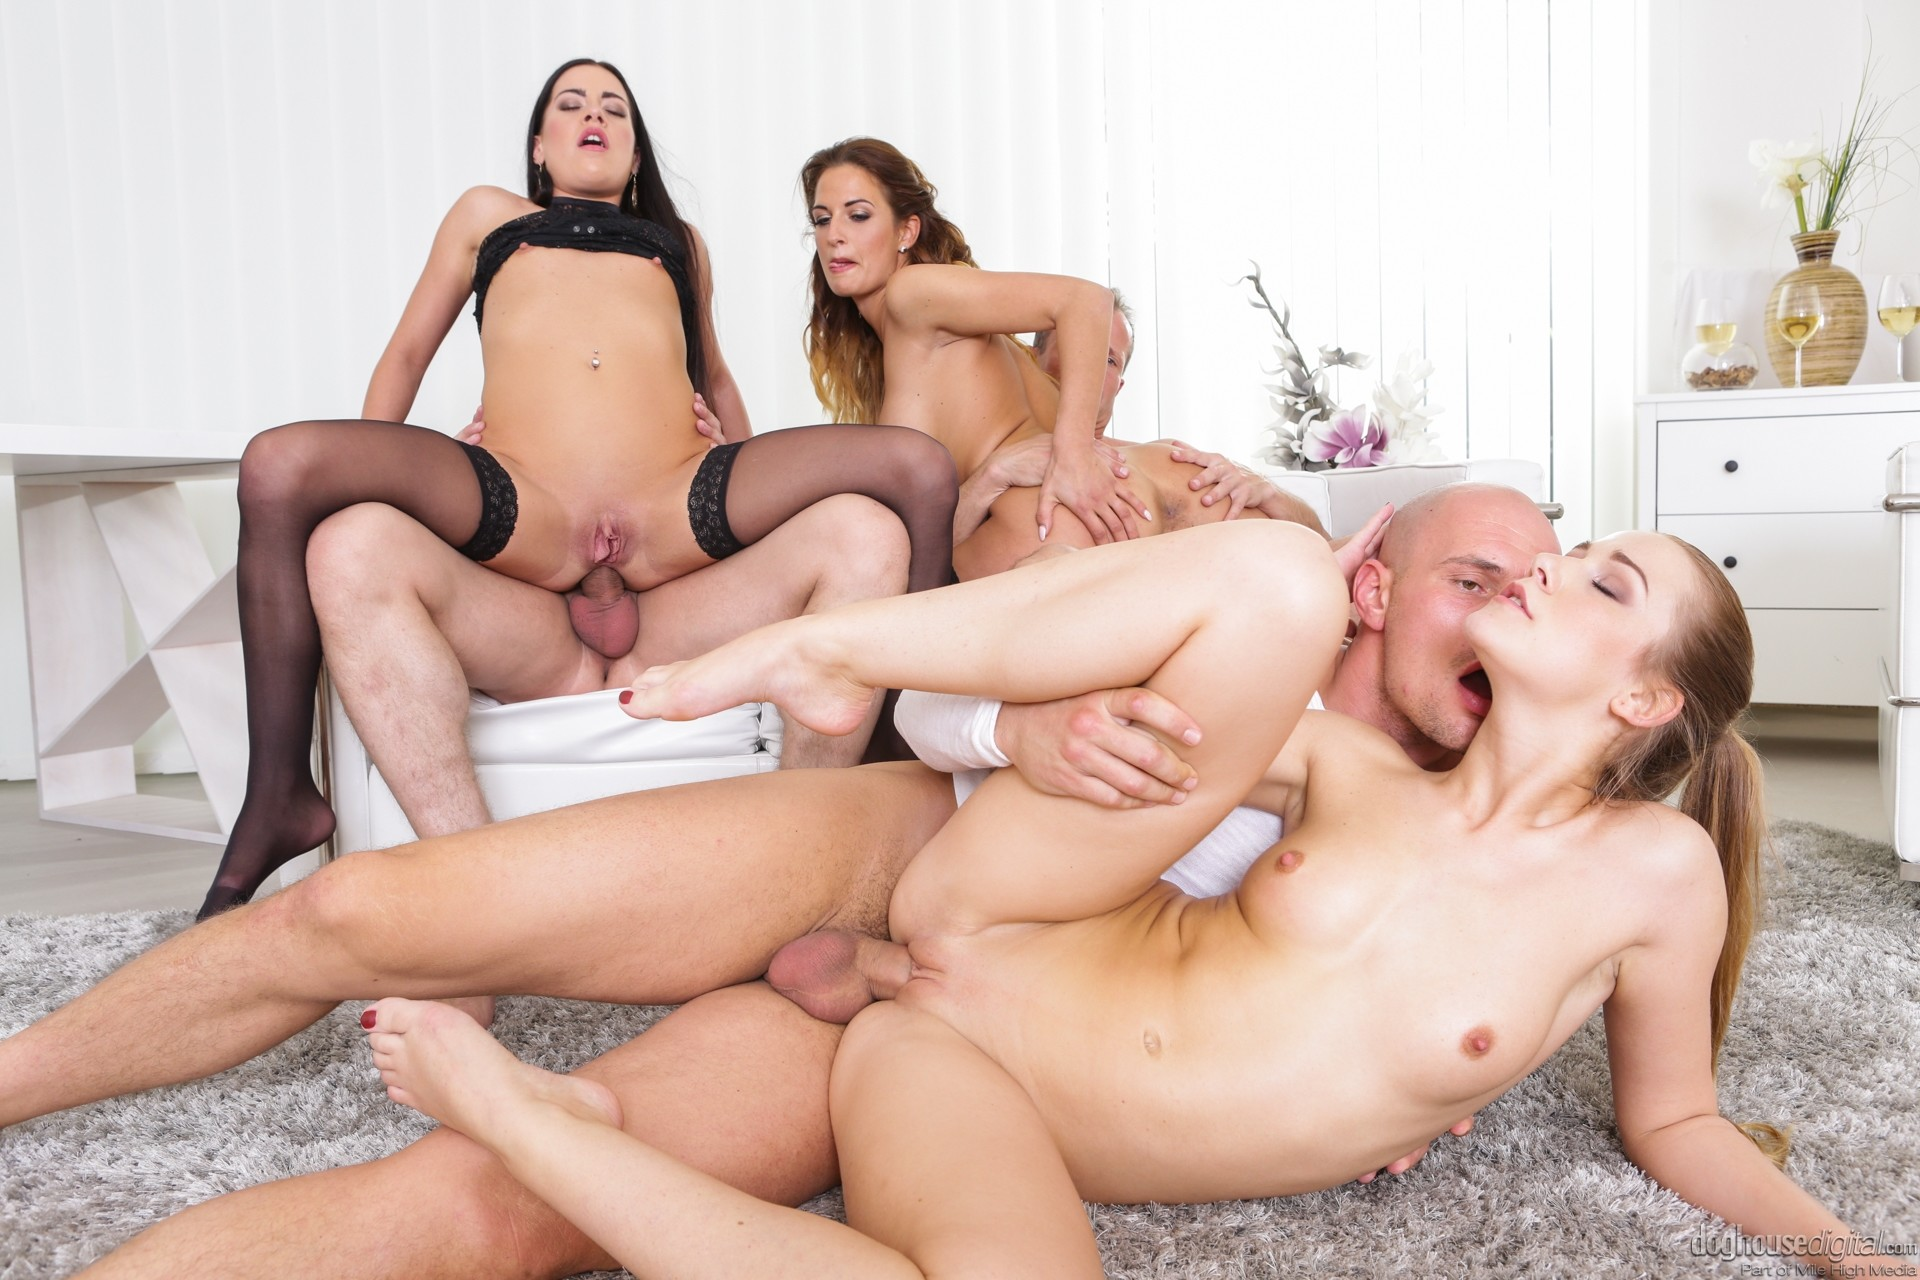 Lesbian group sex with four horny young girls that love eating pussy